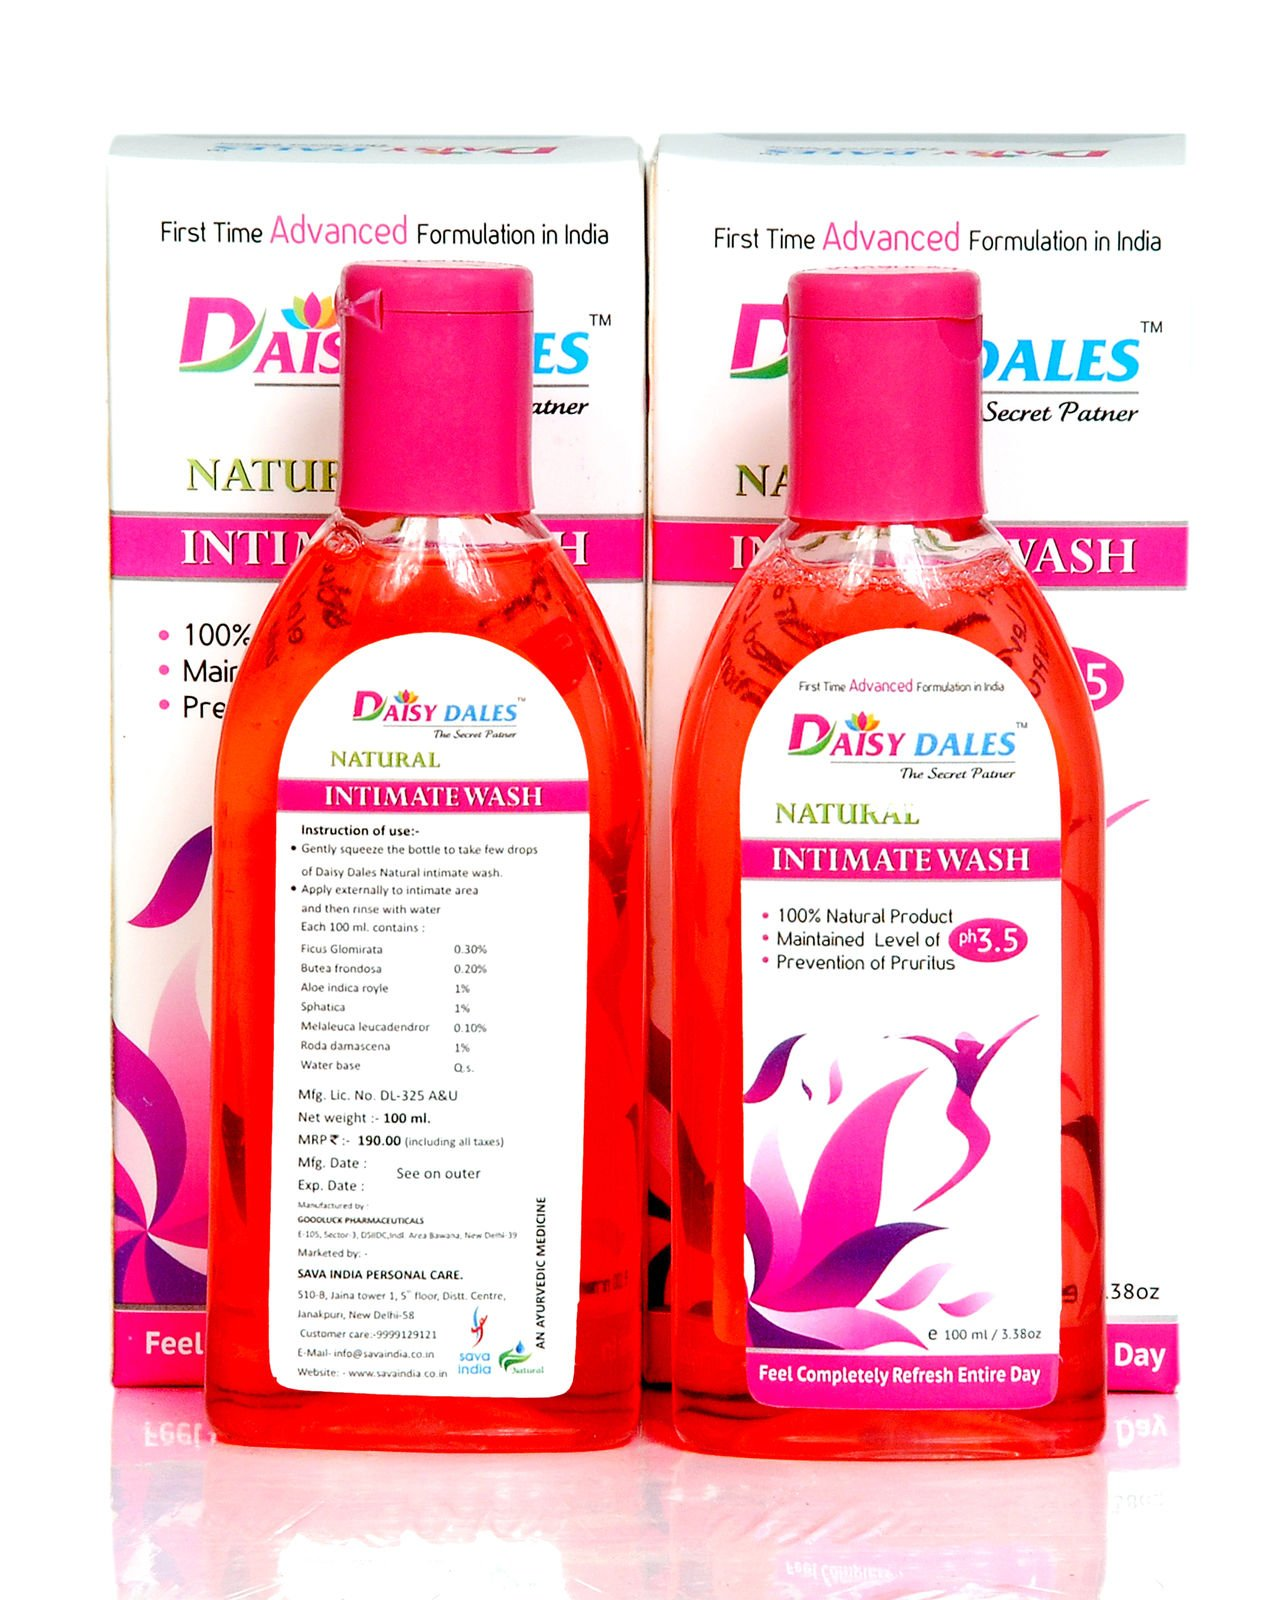 DAISY DALES NATURAL INTIMATE WASH 3.38 Fl. Oz. (100ML) Hygiene Care Products For Women by DAISY DALES (Image #3)